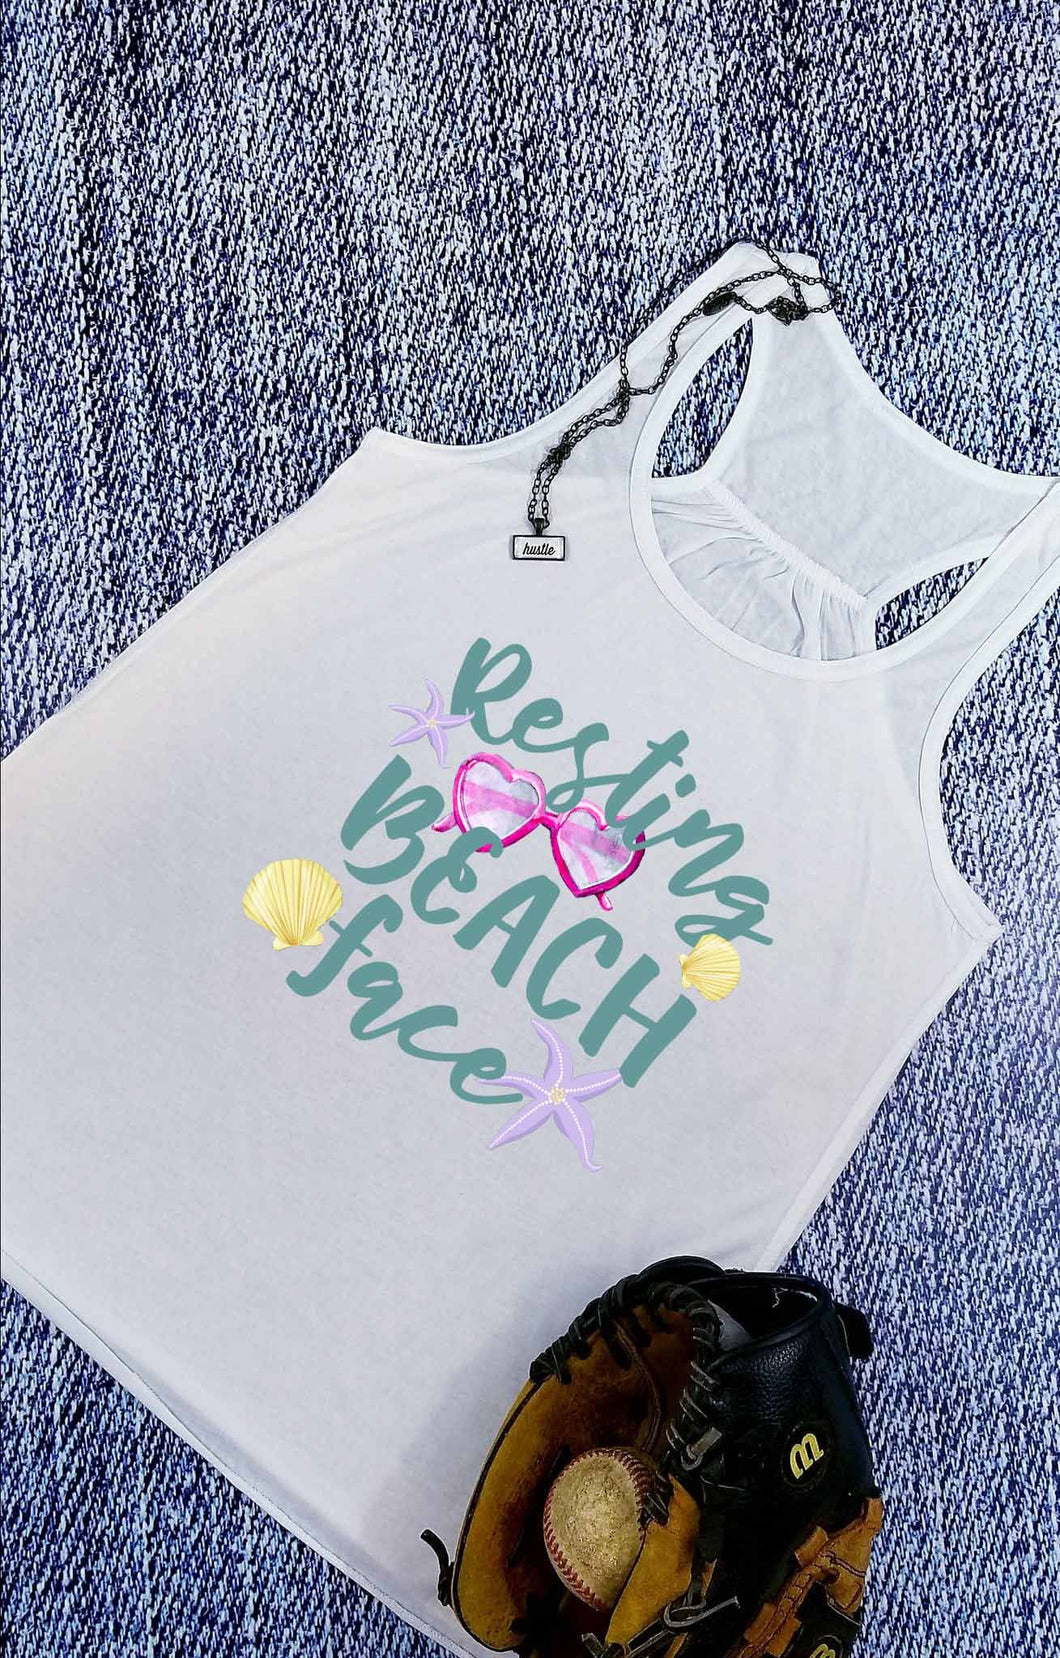 Resting Beach Face Sublimation Transfers